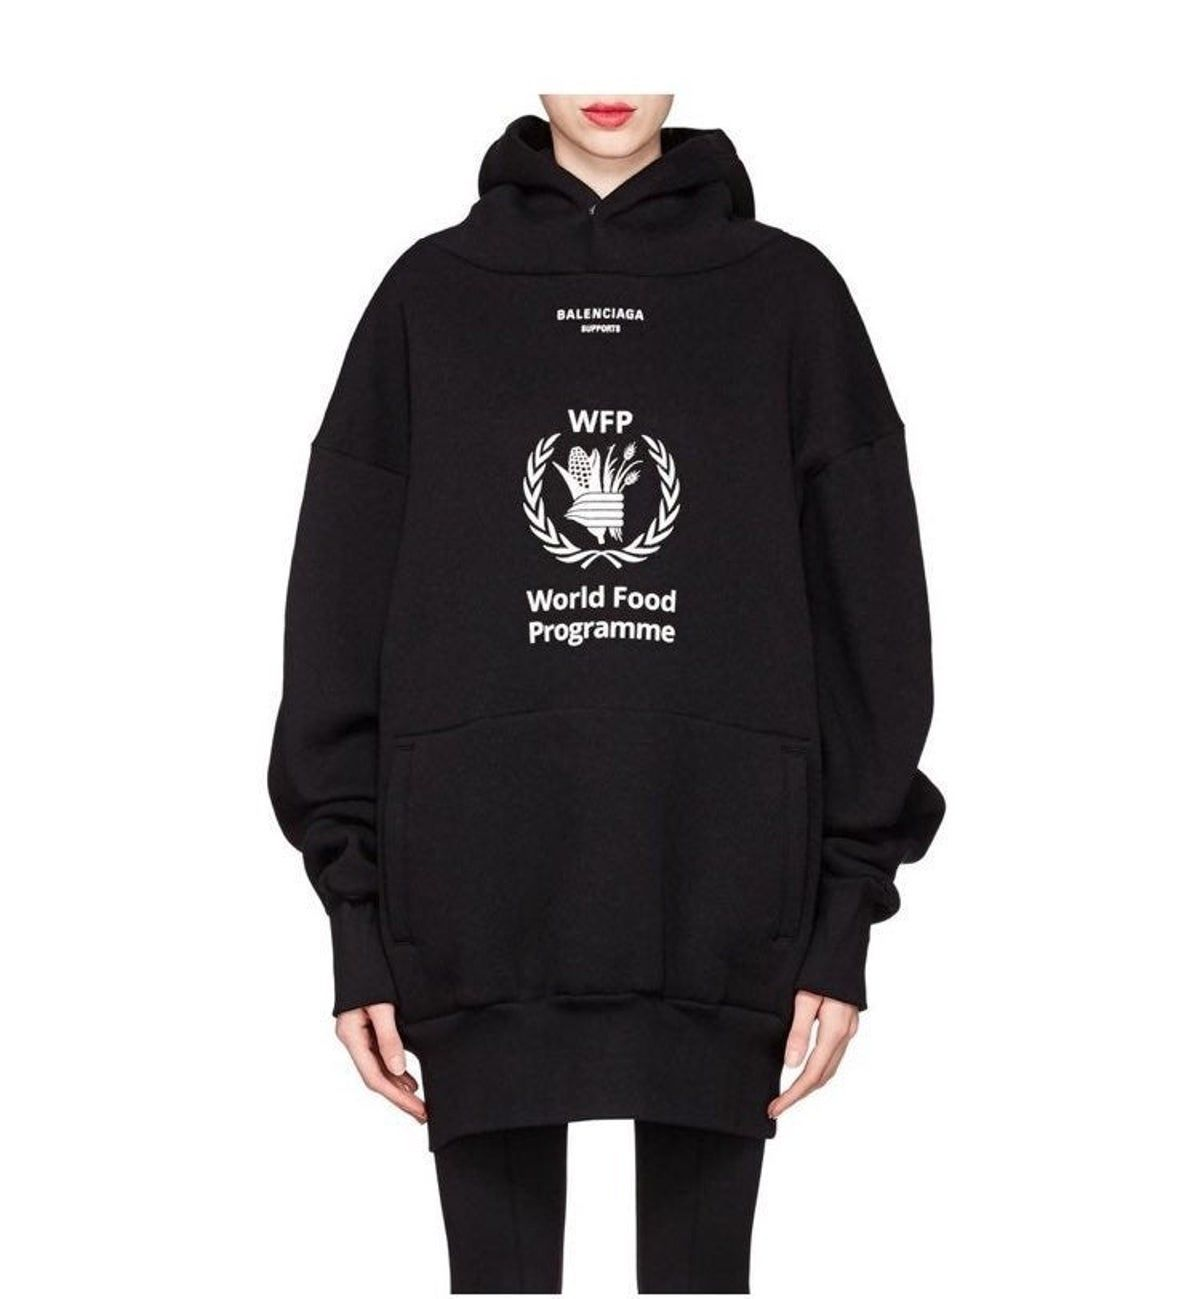 World Food Programme Balenciaga Hoodie On Mercari In 2020 World Food Programme Food Program Hoodies